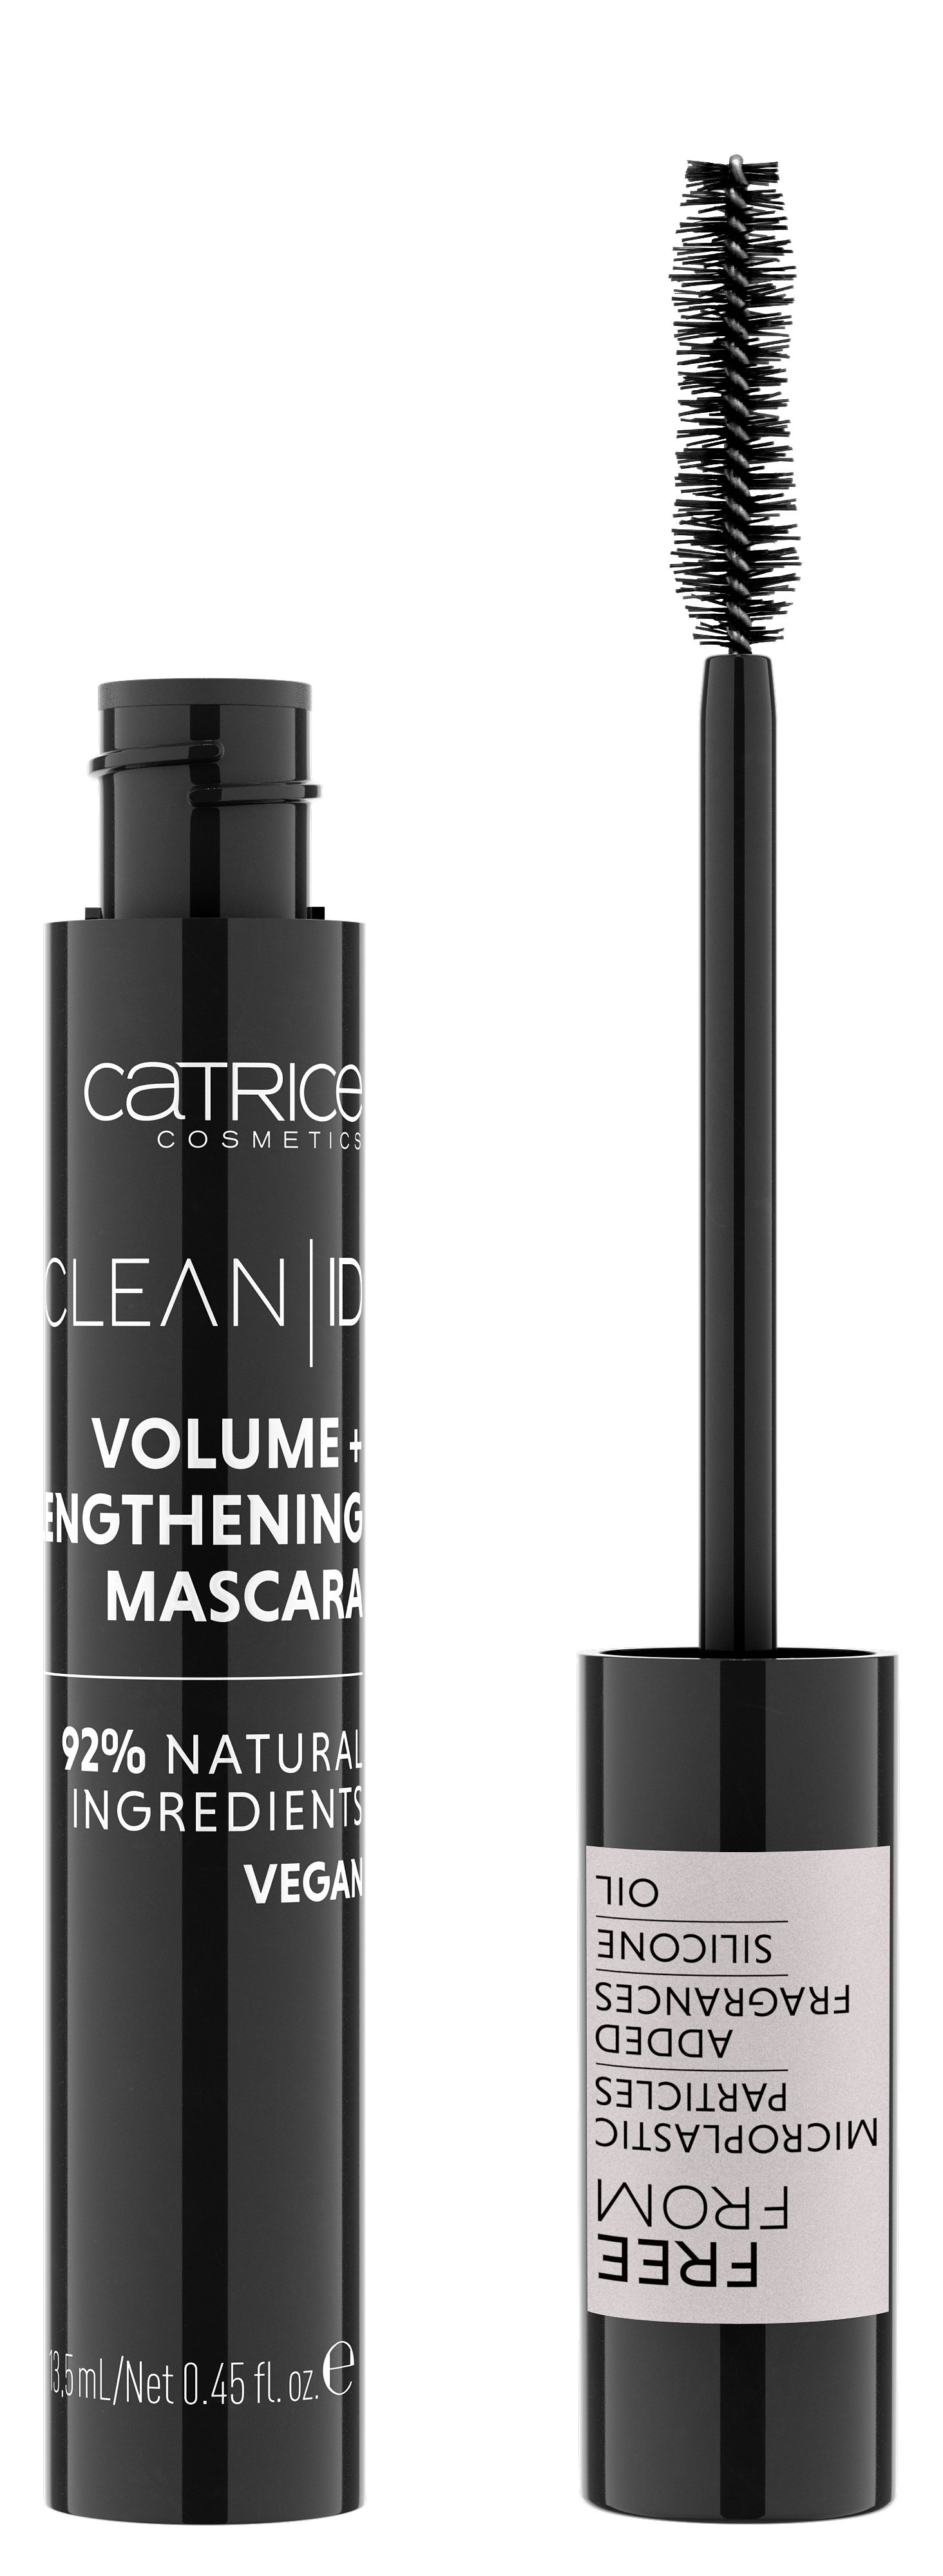 4059729246257 Catrice Clean ID Volume Lengthening Mascara 010 Image Front View Full Open png - CATRICE ASSORTIMENTSUPDATE LENTE/ ZOMER 2020